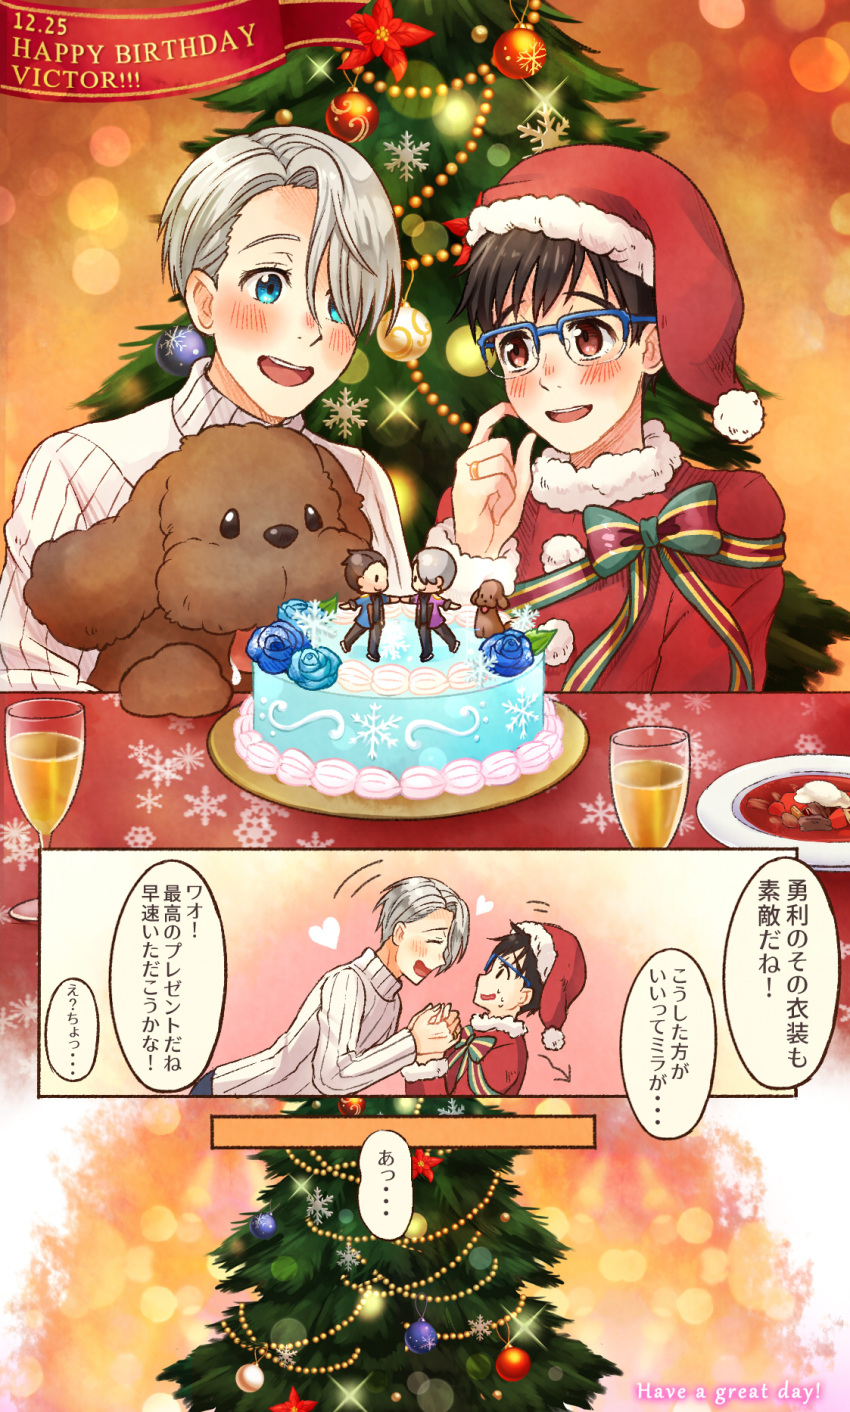 2boys birthday black_hair blue-framed_eyewear blue_eyes borscht_(food) brown_eyes cake christmas christmas_tree cup dog drinking_glass food glasses hair_over_one_eye hand_holding happy_birthday hat highres katsuki_yuuri makkachin male_focus multiple_boys ribbon santa_hat silver_hair sparkle sweater translation_request turtleneck turtleneck_sweater twc_(p-towaco) viktor_nikiforov wine_glass yuri!!!_on_ice